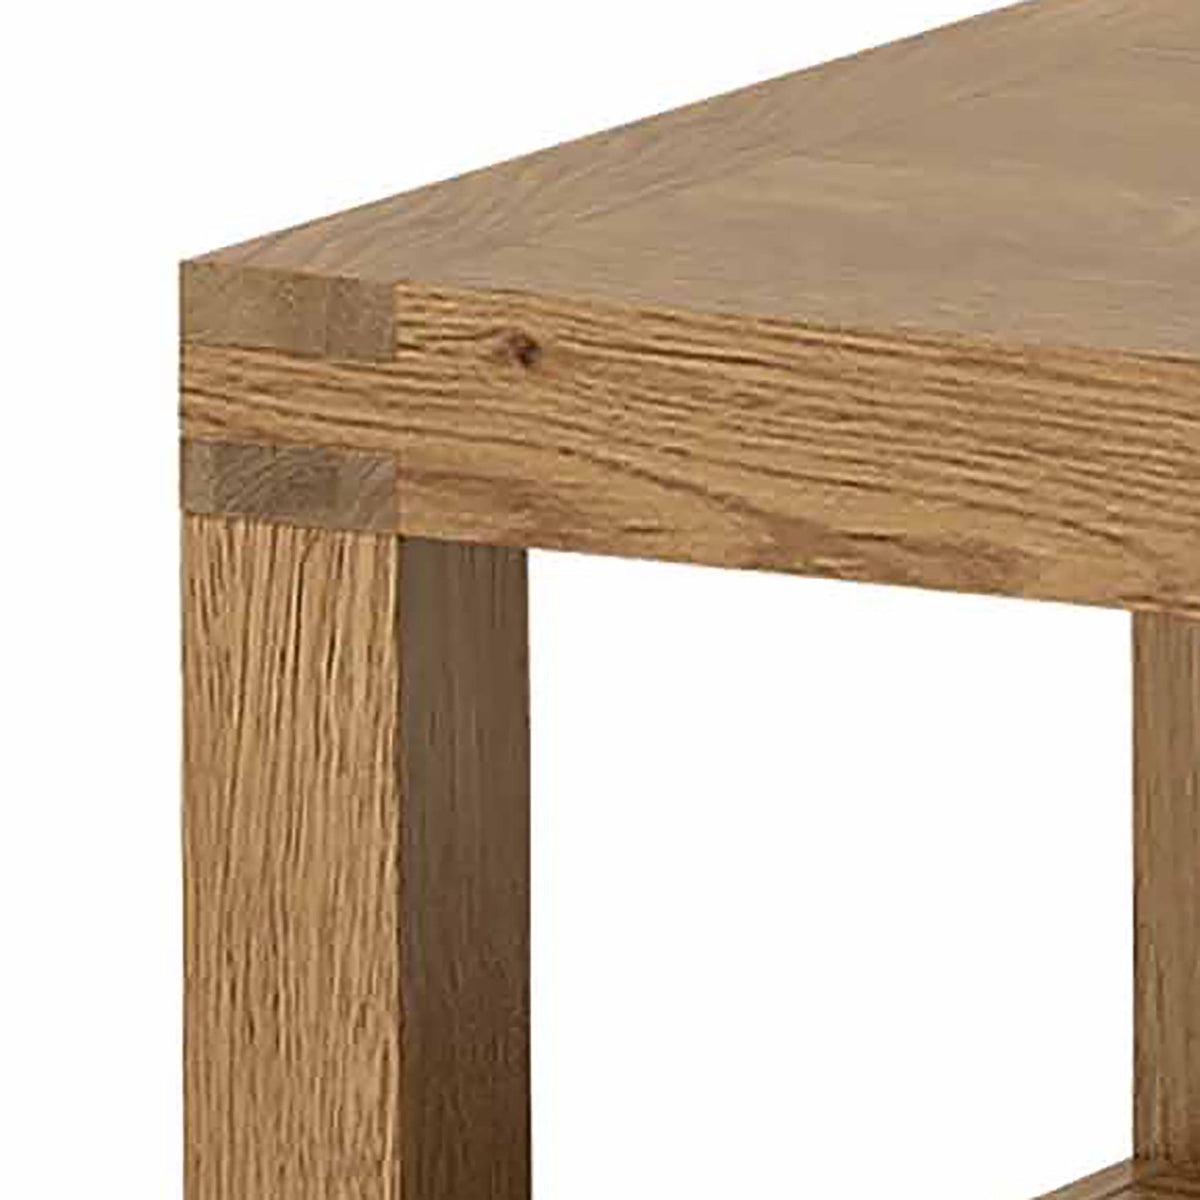 Abbey Grande Oak Coffee Table - Top Corner Close Up